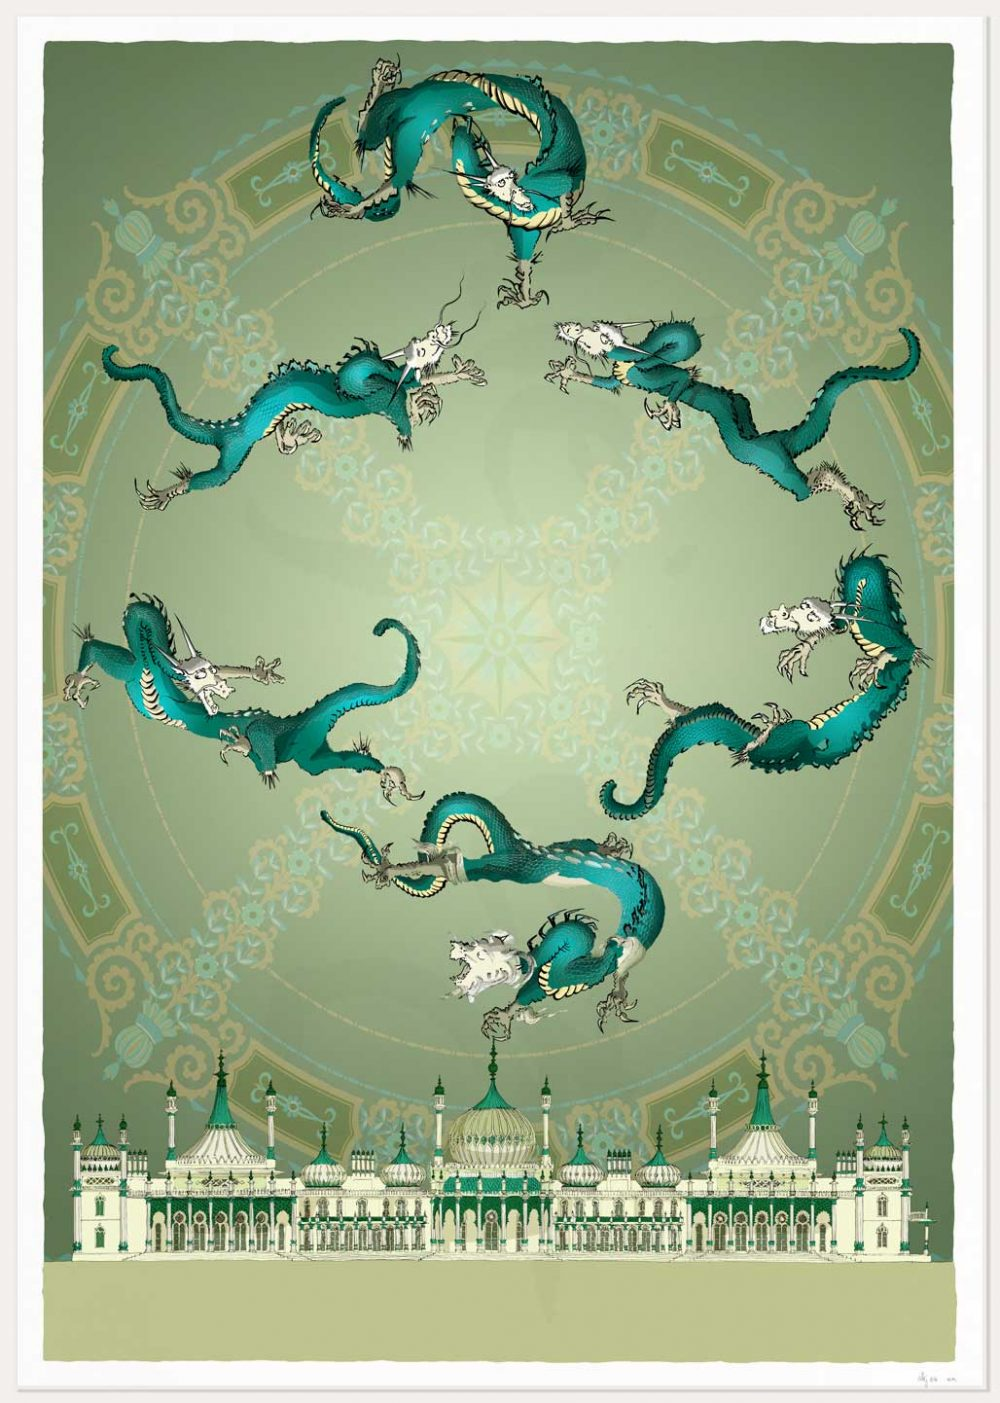 print named Brighton Royal Pavilion Chinoiseriez Arco by artist alej ez